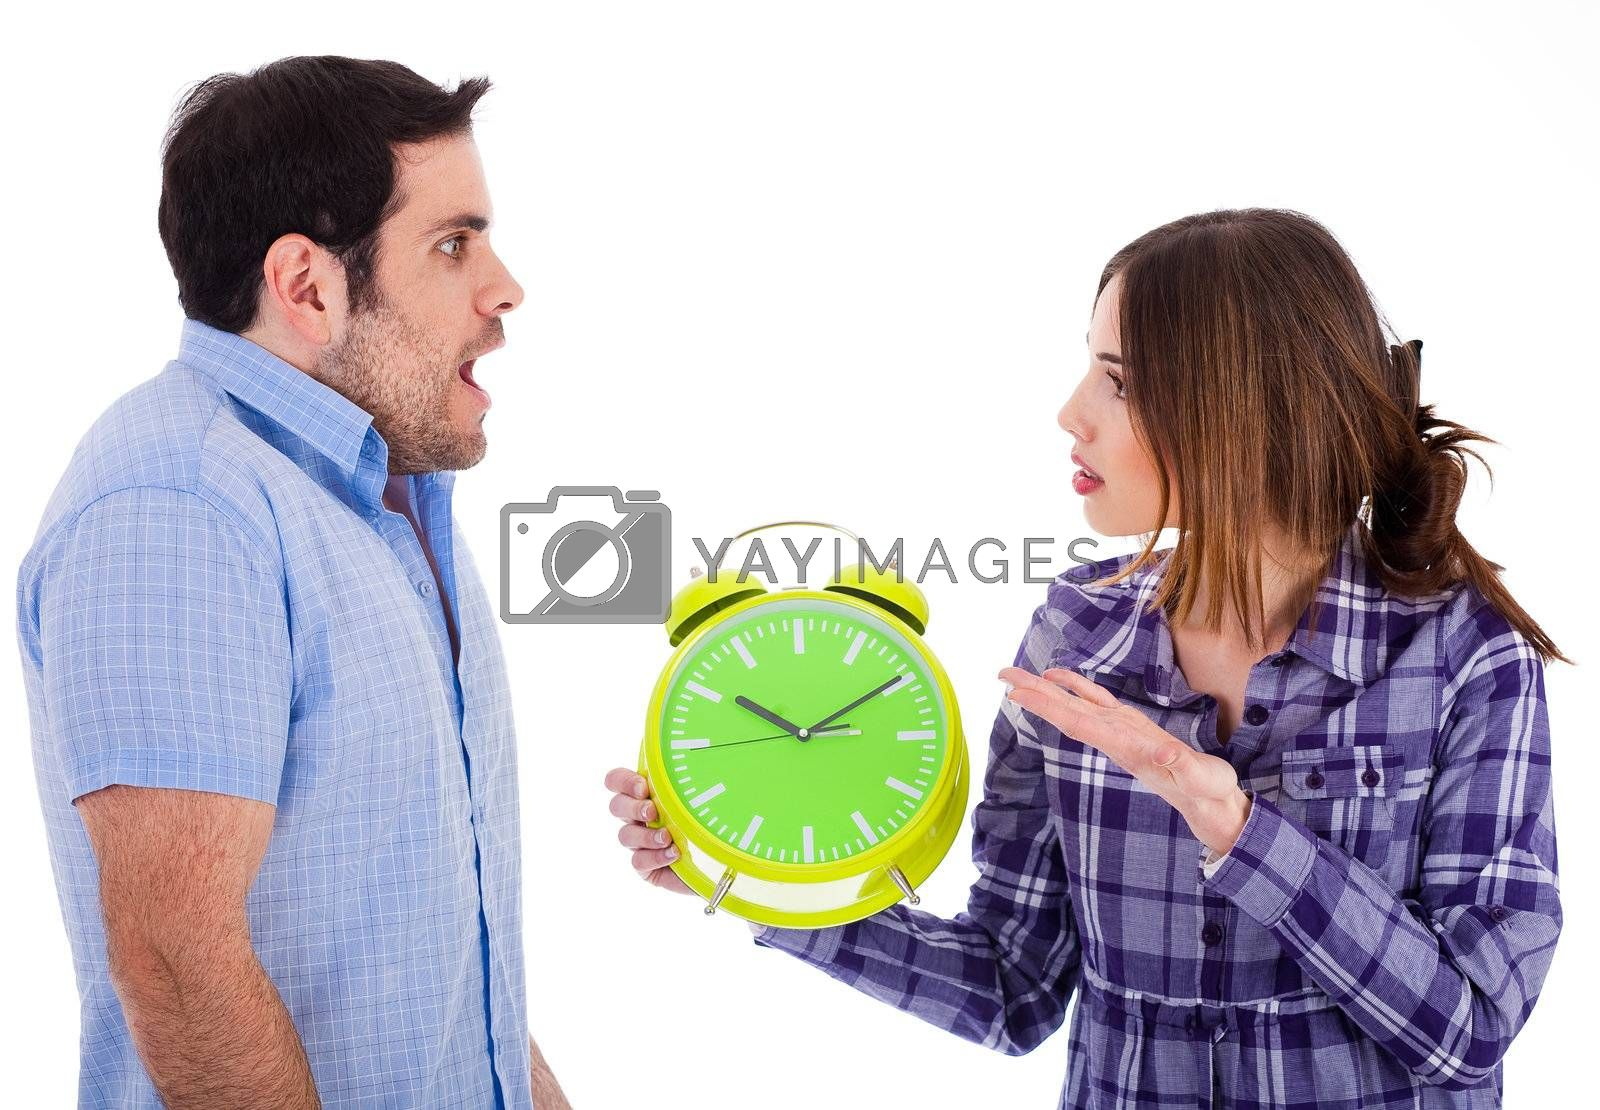 Women angry on her boyfriend for being late by showing the clock on a white background